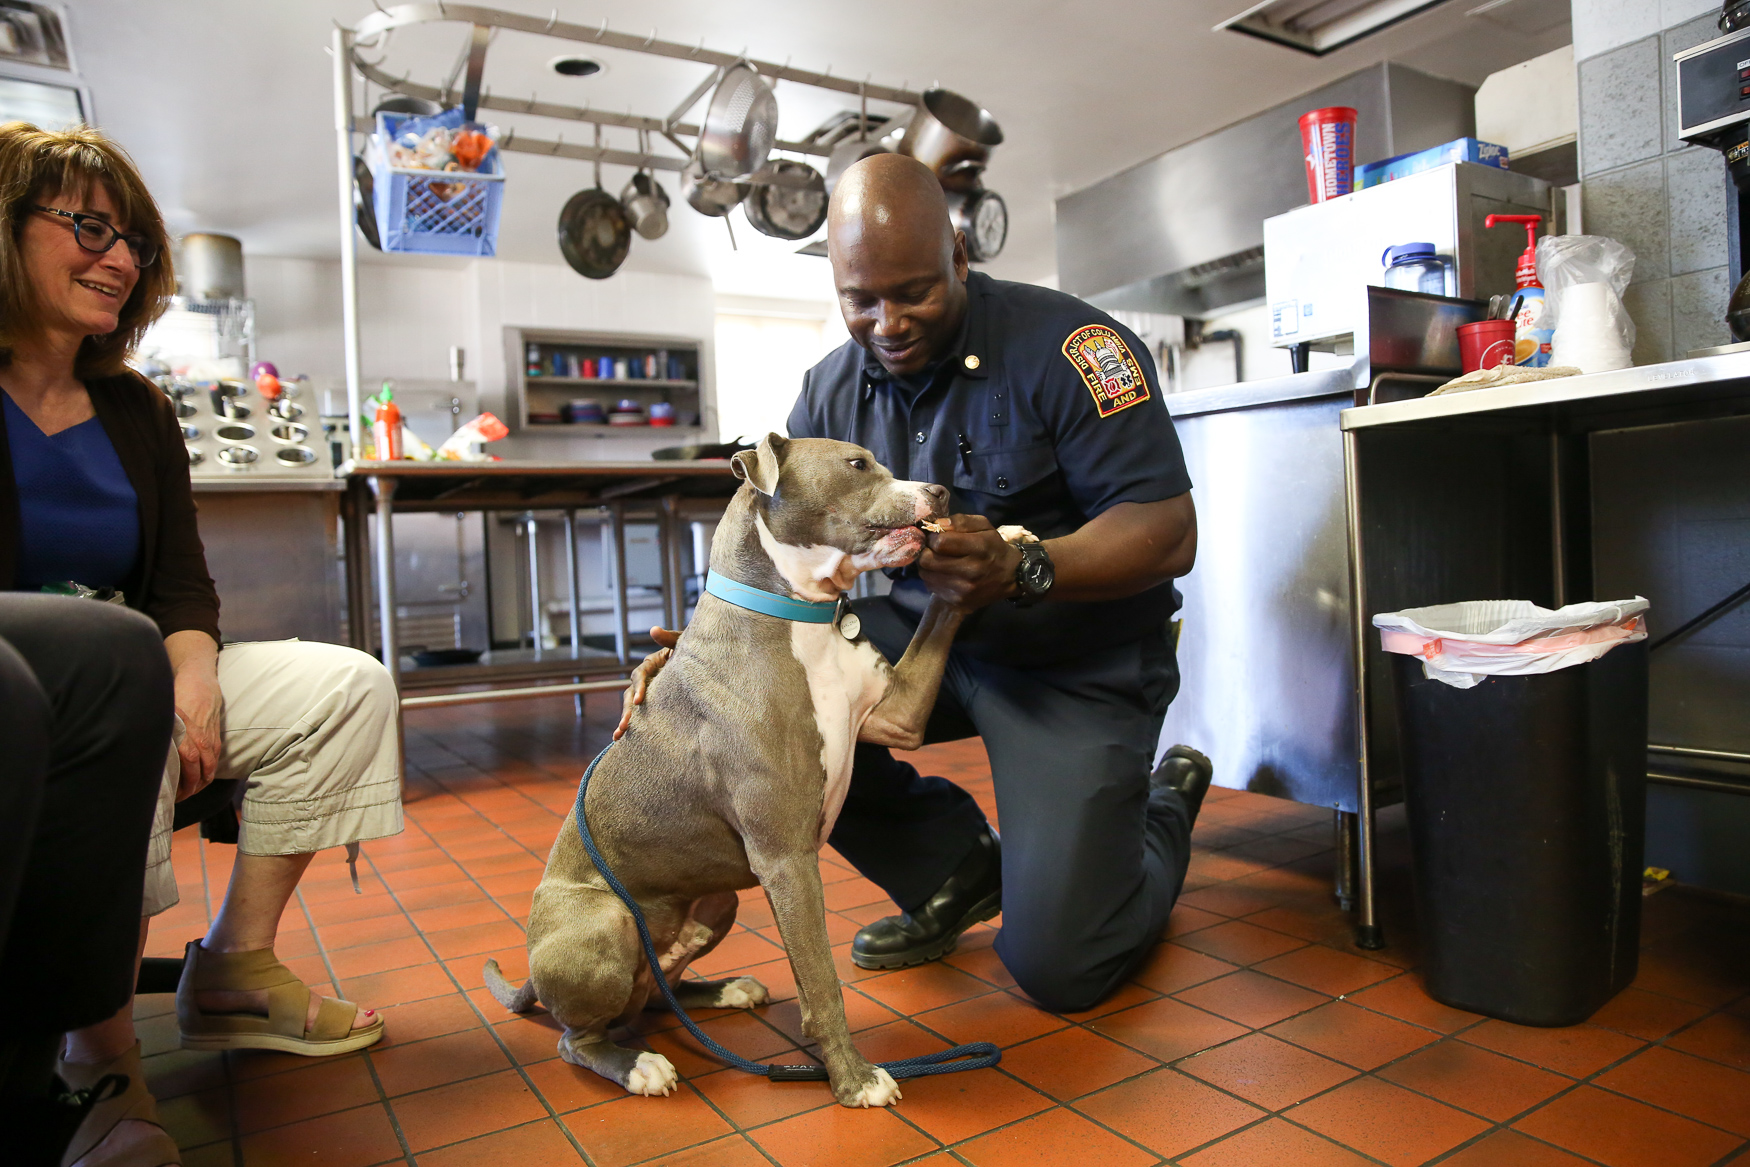 Engine Company 24 in Petworth was visited by Earl Grey, a two-year old pitbull who was adopted a year ago after being rescued from the streets of Florida with a broken pelvis. Although Earl Grey is a little shy, his mellow temperament won everyone over - he sat for selfies and enjoyed chicken snacks from firefighters and EMS workers. (Amanda Andrade-Rhoades/DC Refined)